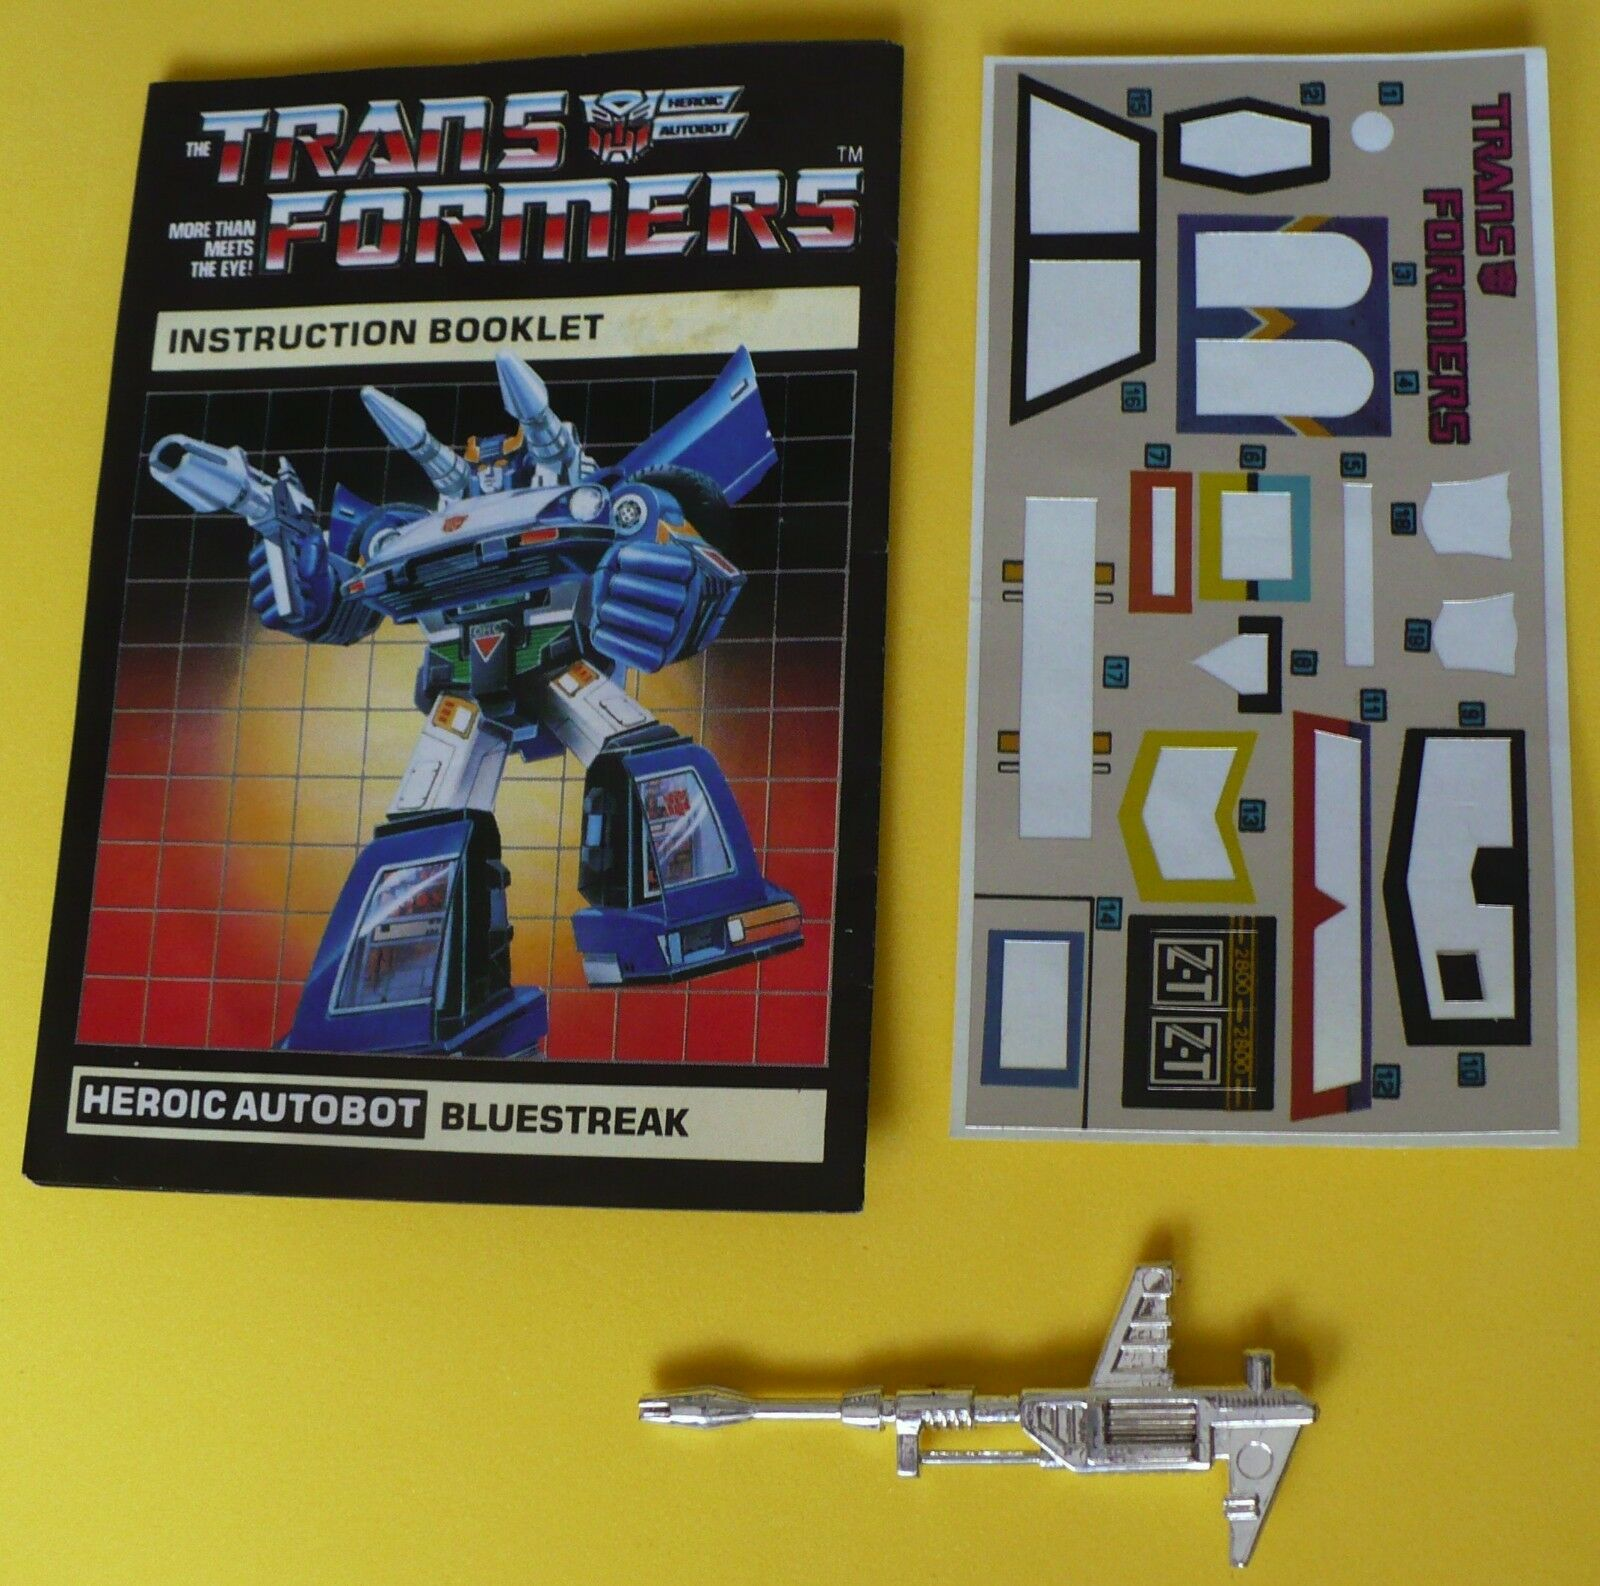 TRANSFORMERS TRANSFORMERS TRANSFORMERS G1 blueESTREAK INSTRUCTION BOOK- LASER GUN-MISSILES-RED LAUNCHERS 23d12b